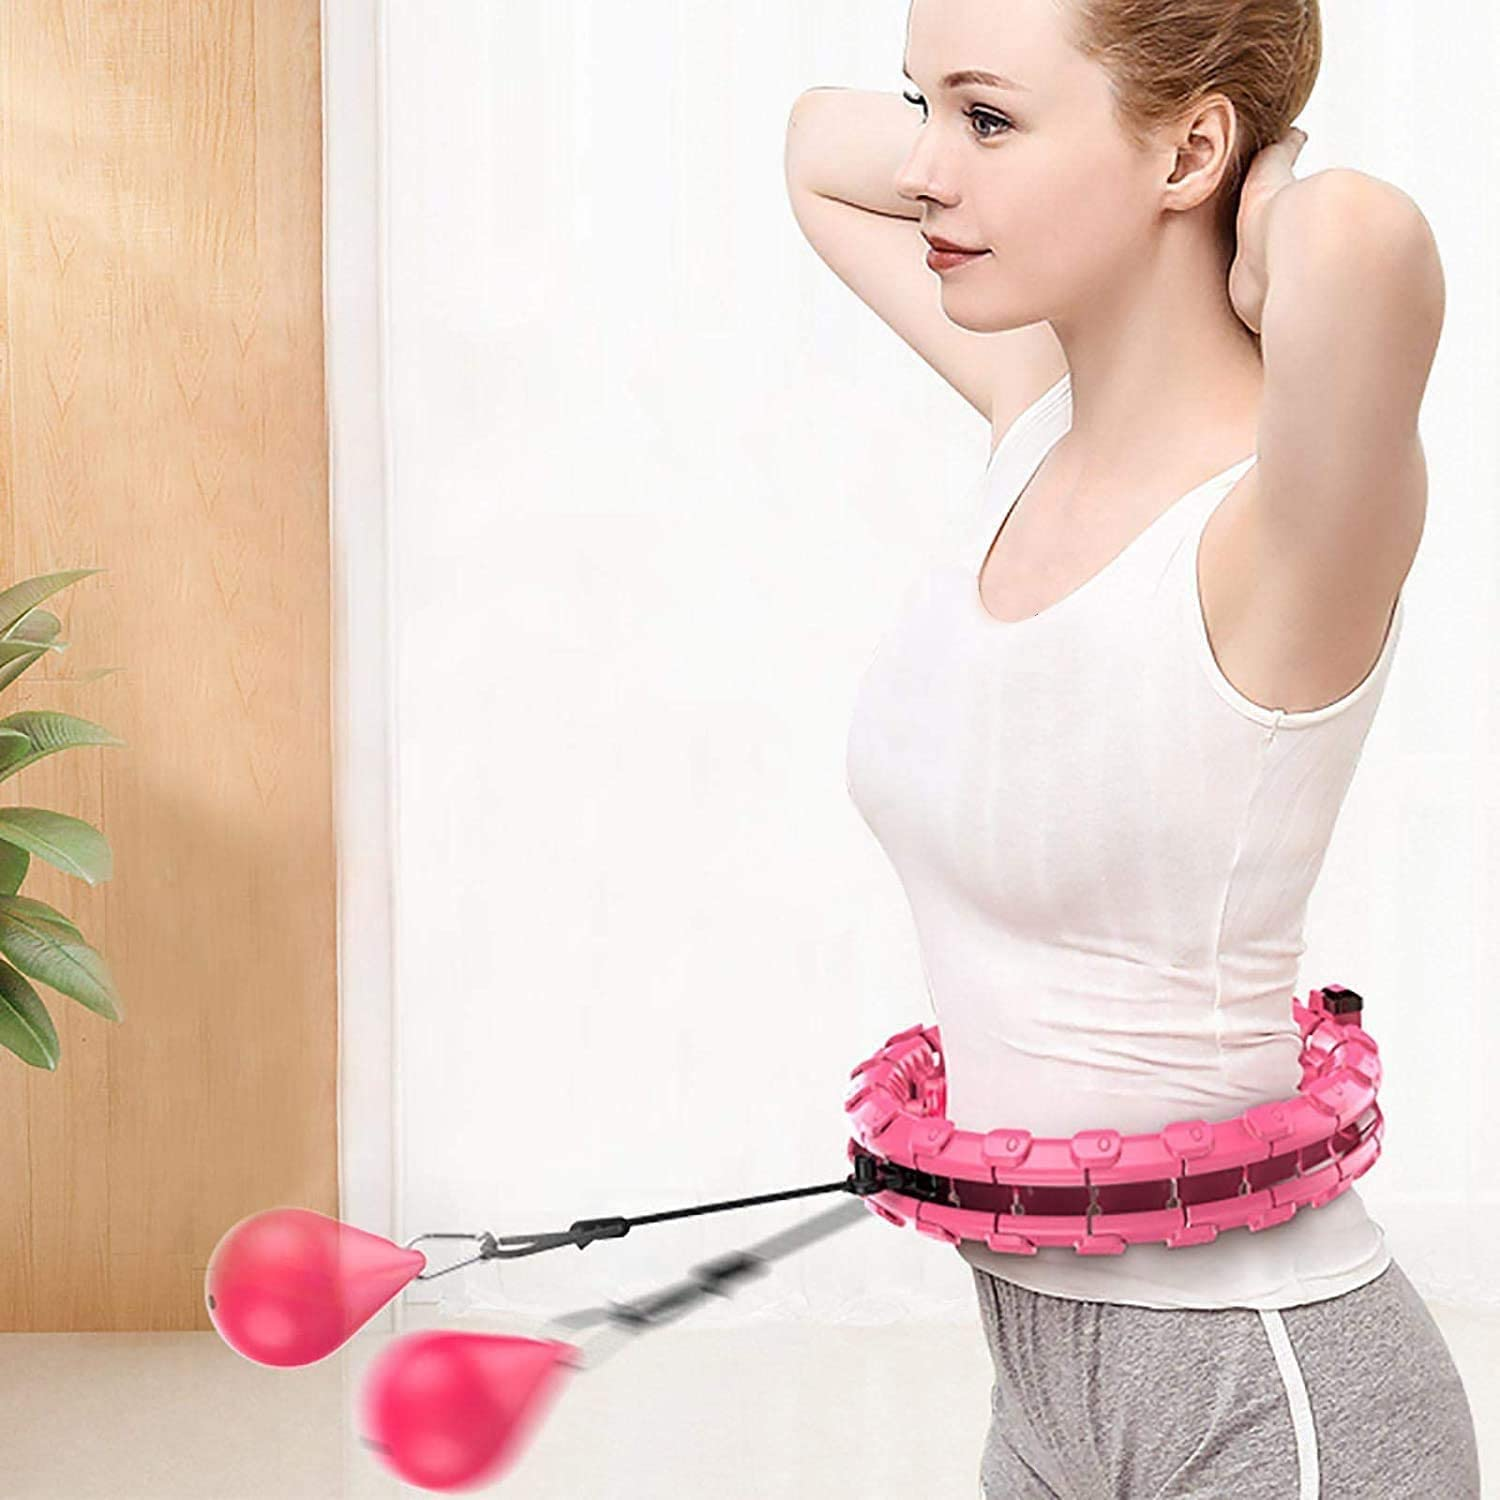 Red 2 in 1 Abdomen Fitness Weight Loss Massage Non-Fall Hoola Hoops 24 Detachable Knots Adjustable Weight Auto-Spinning Ball Weighted Smart Hula Hoop for Adults and Kids Exercising